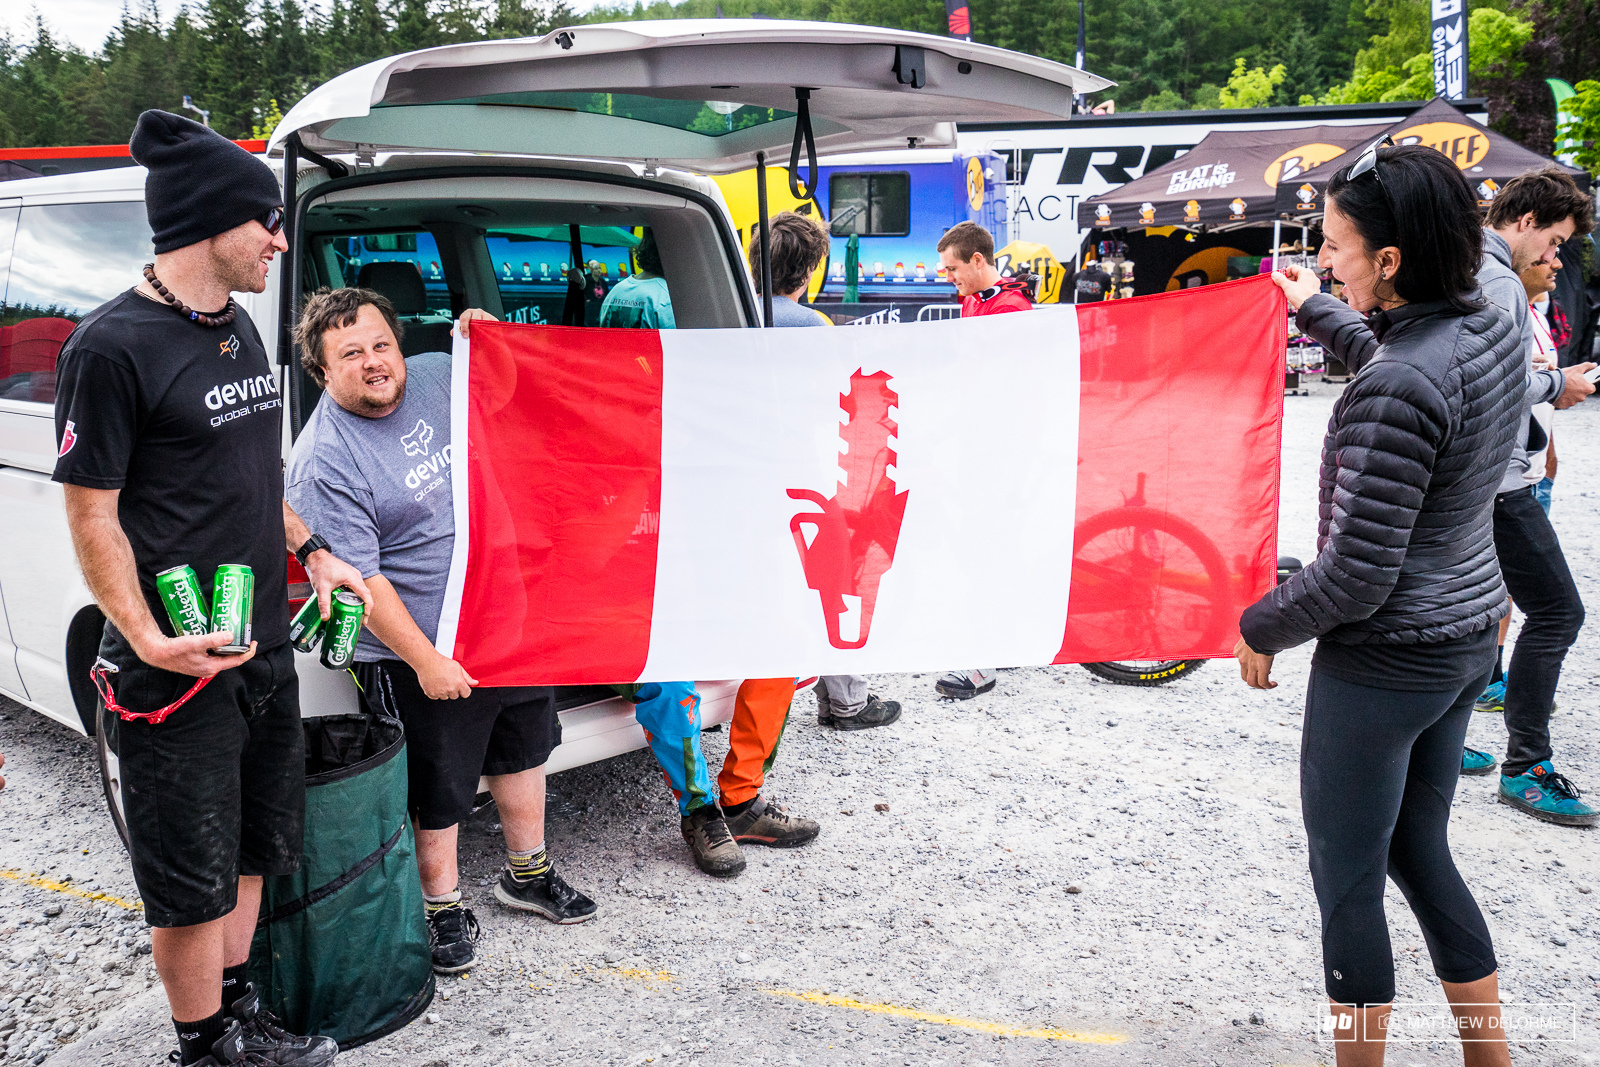 Gabe Fox was more than stoked on this rendition of the Canadian flag.